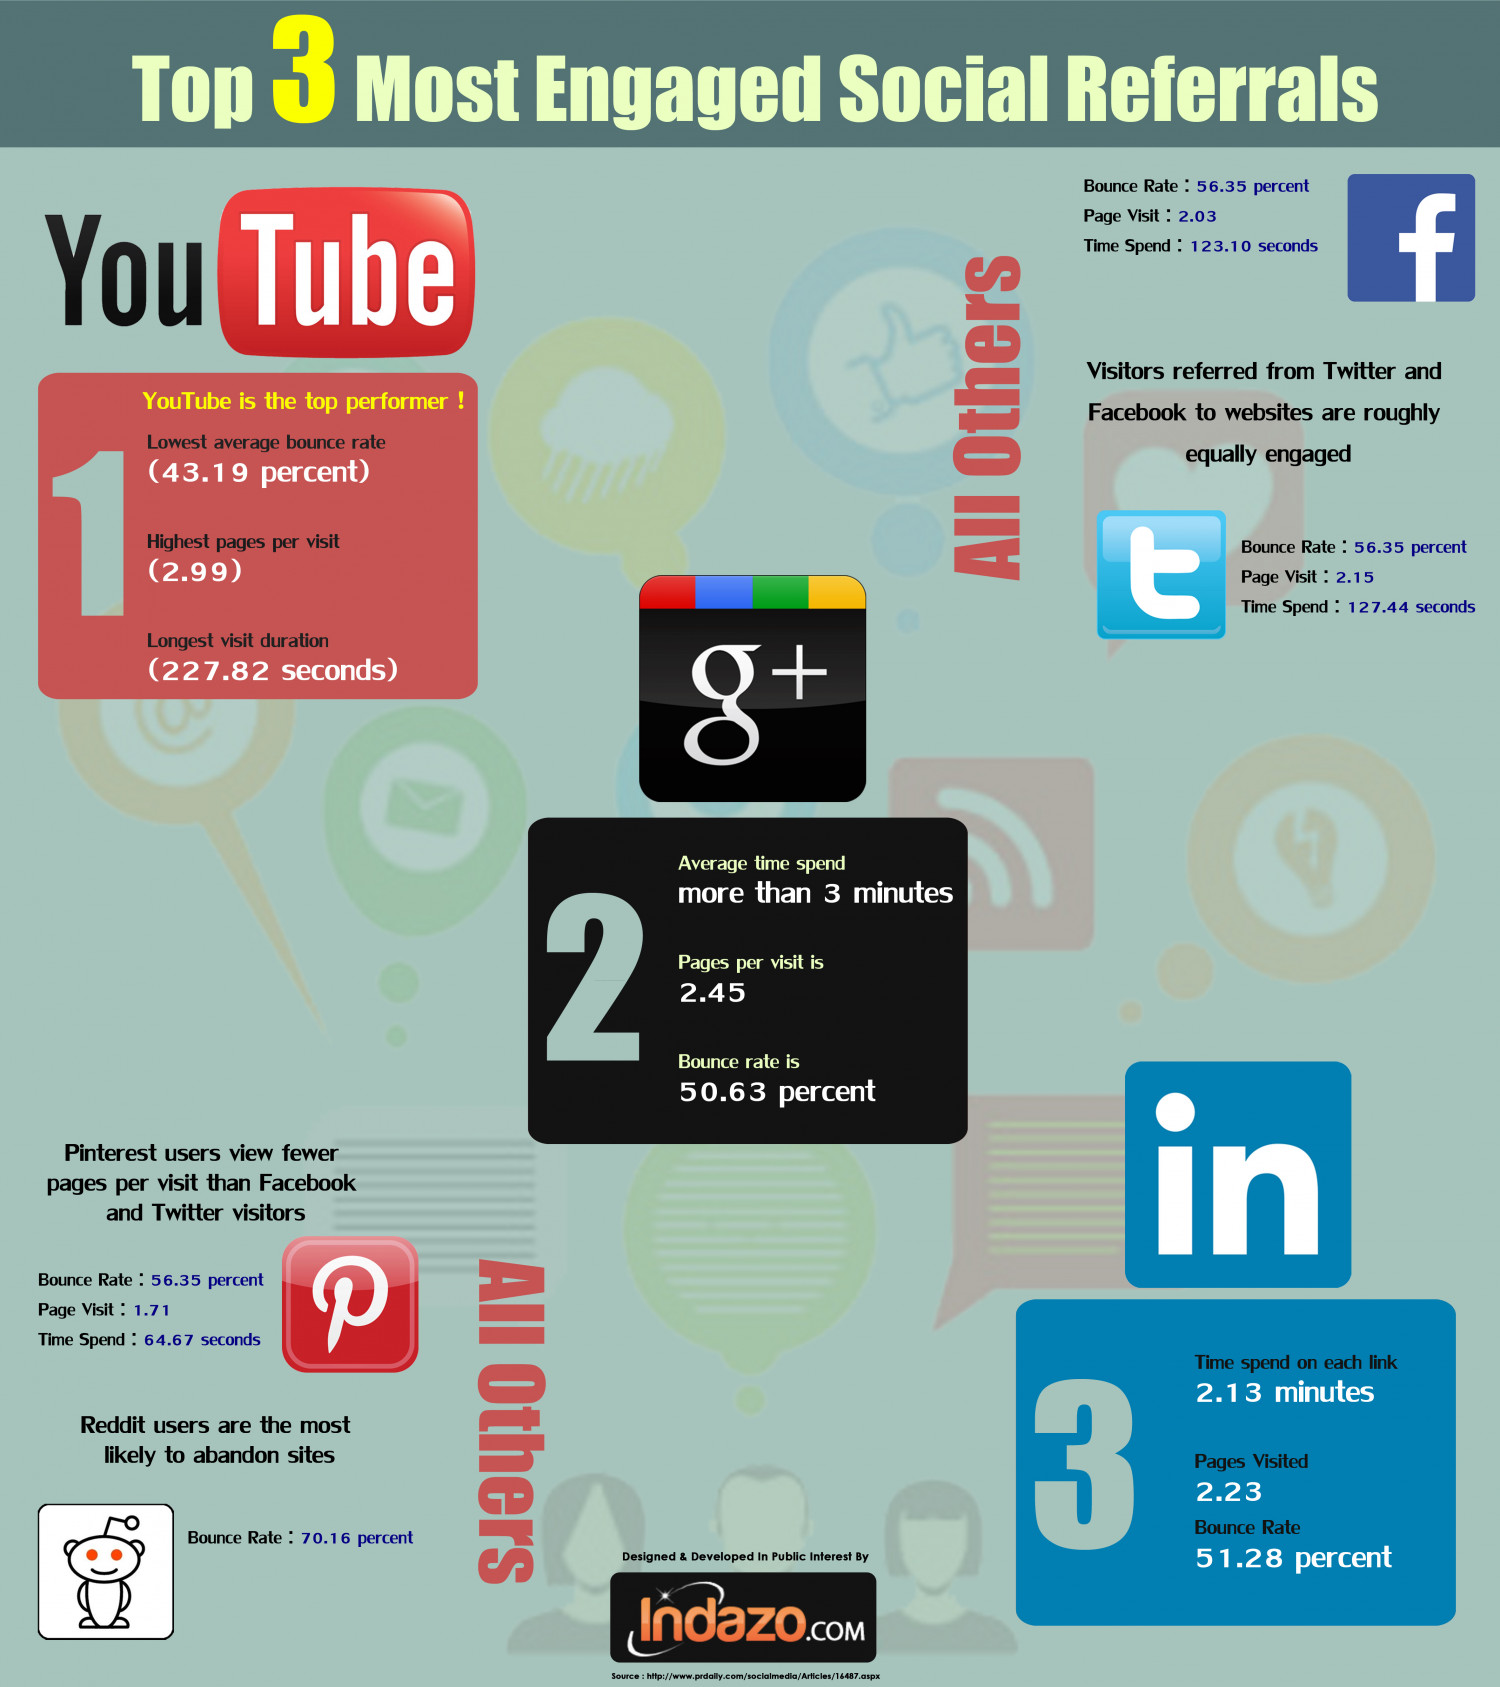 Top 3 Most Engaged Social Referrals Infographic